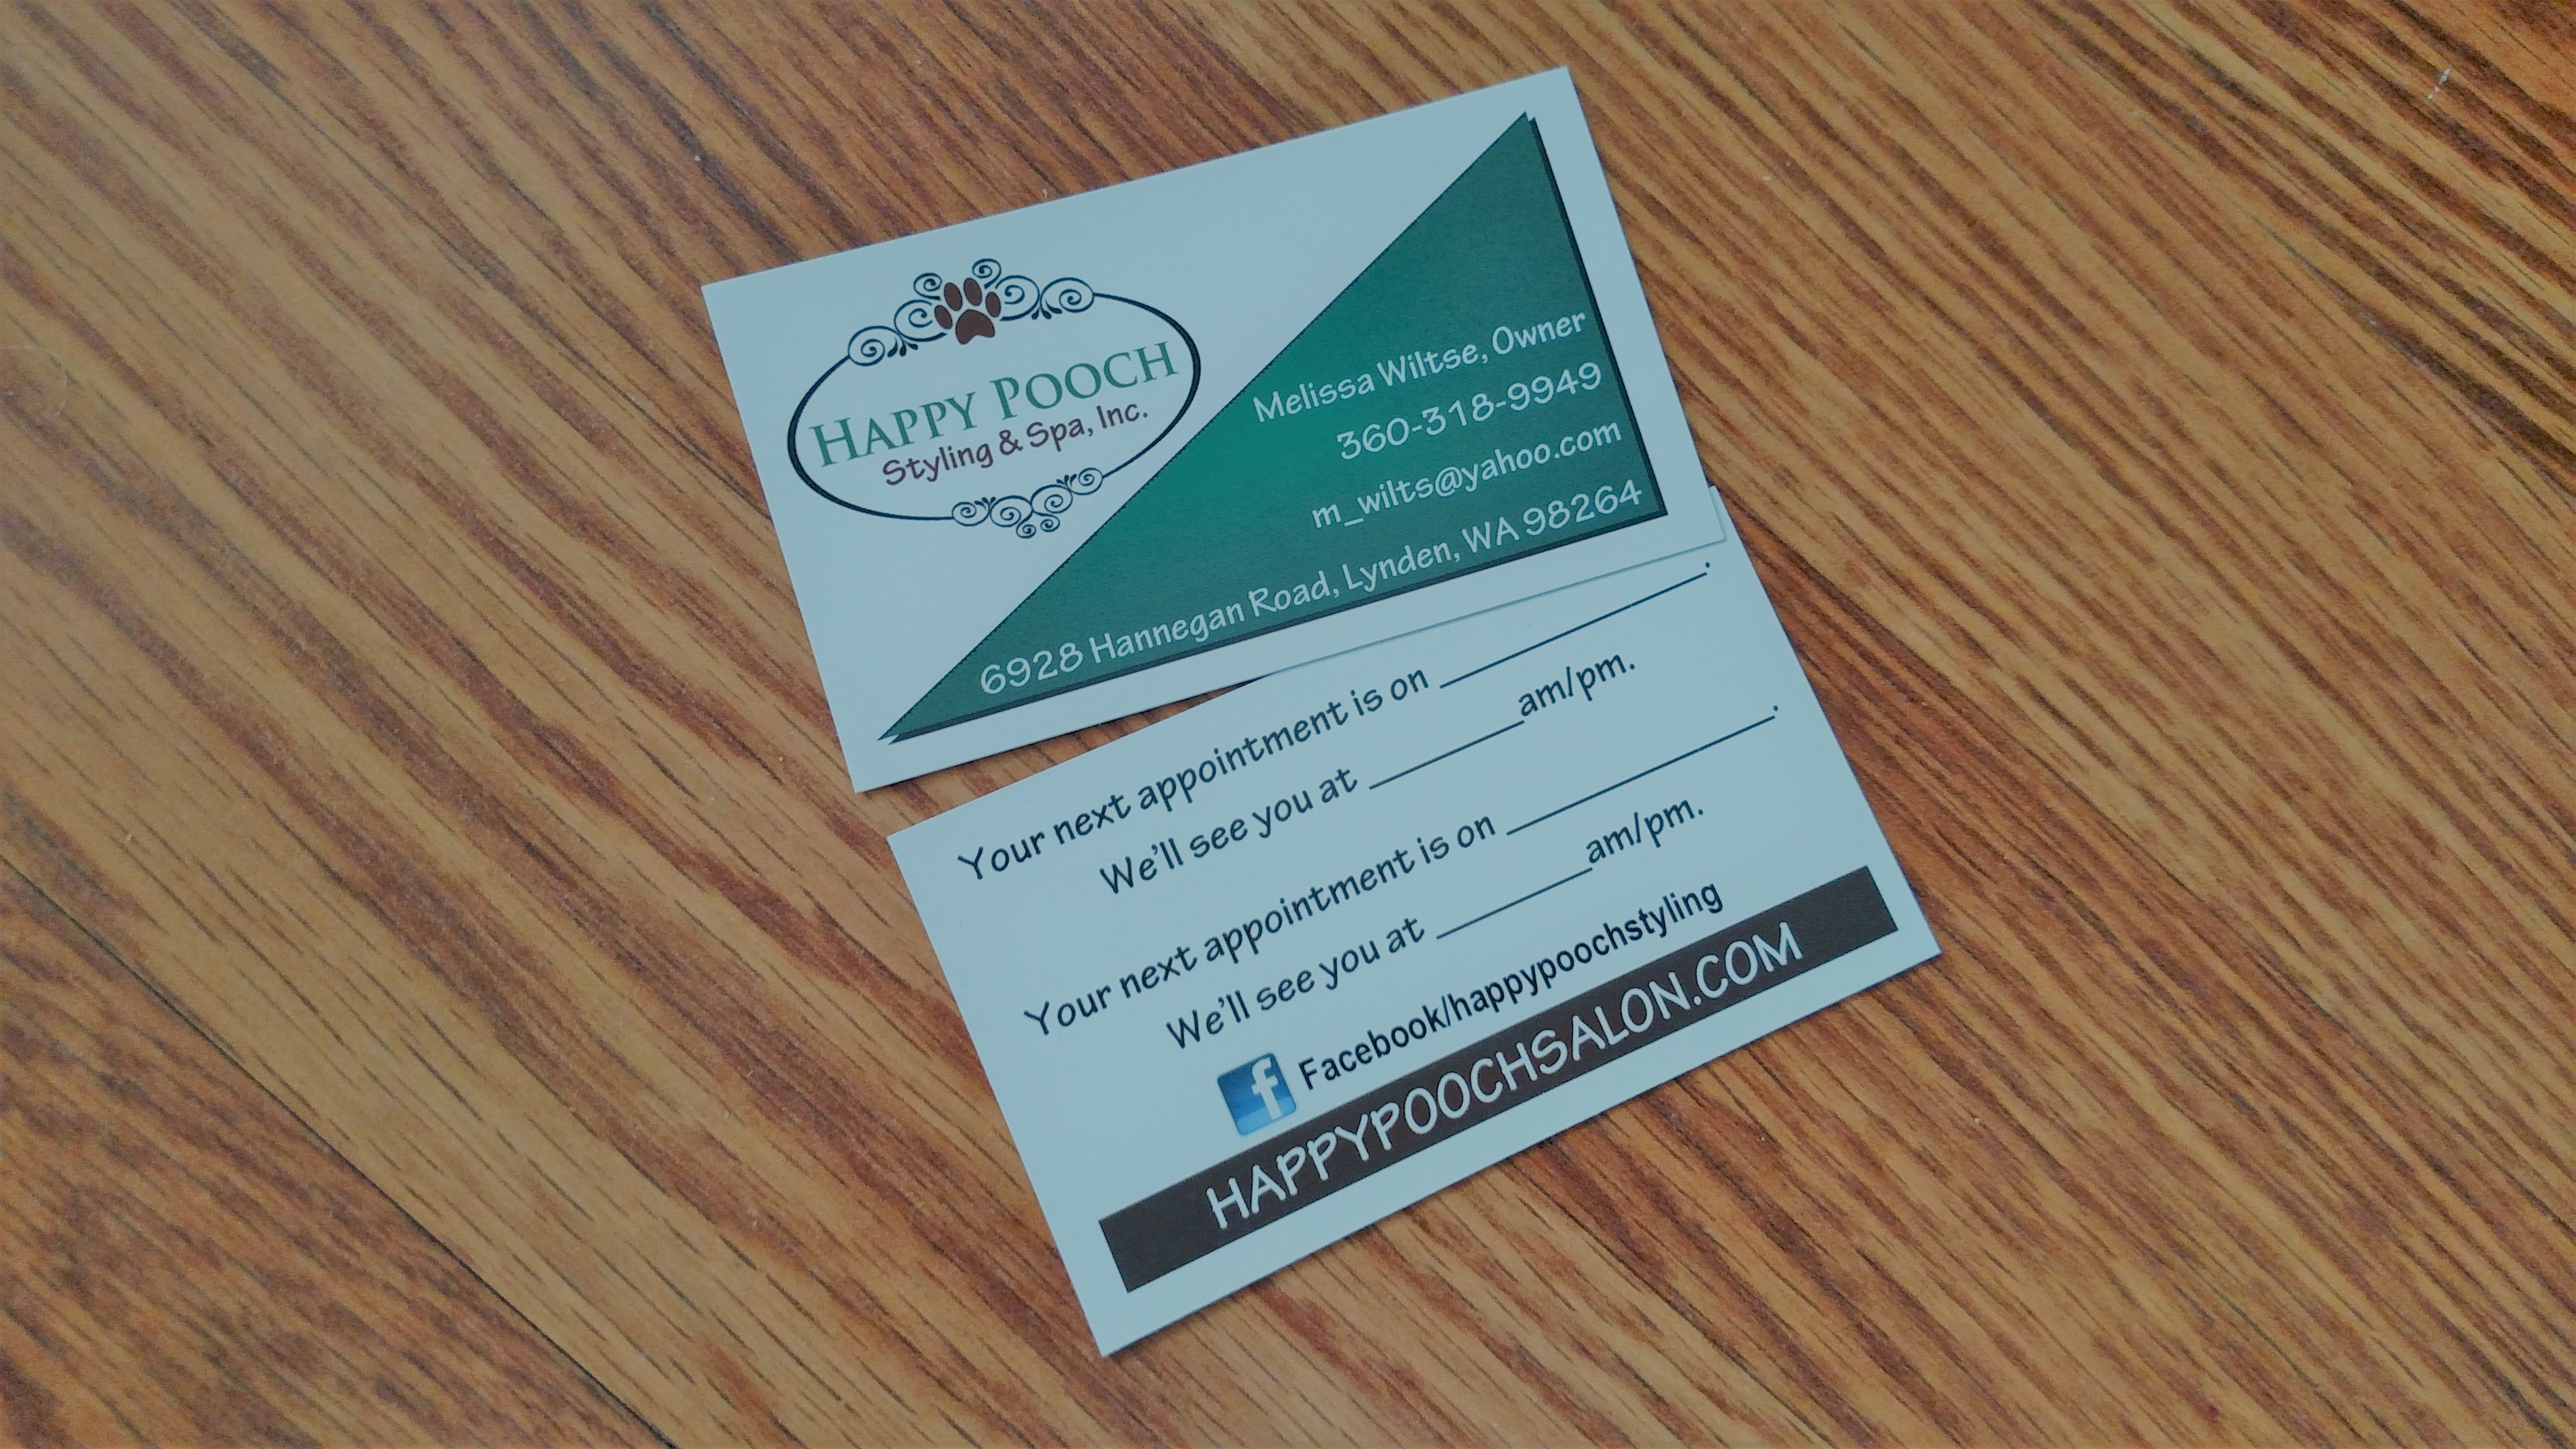 Best Of Pictures Of Dog Groomer Business Cards – Business Cards and ...